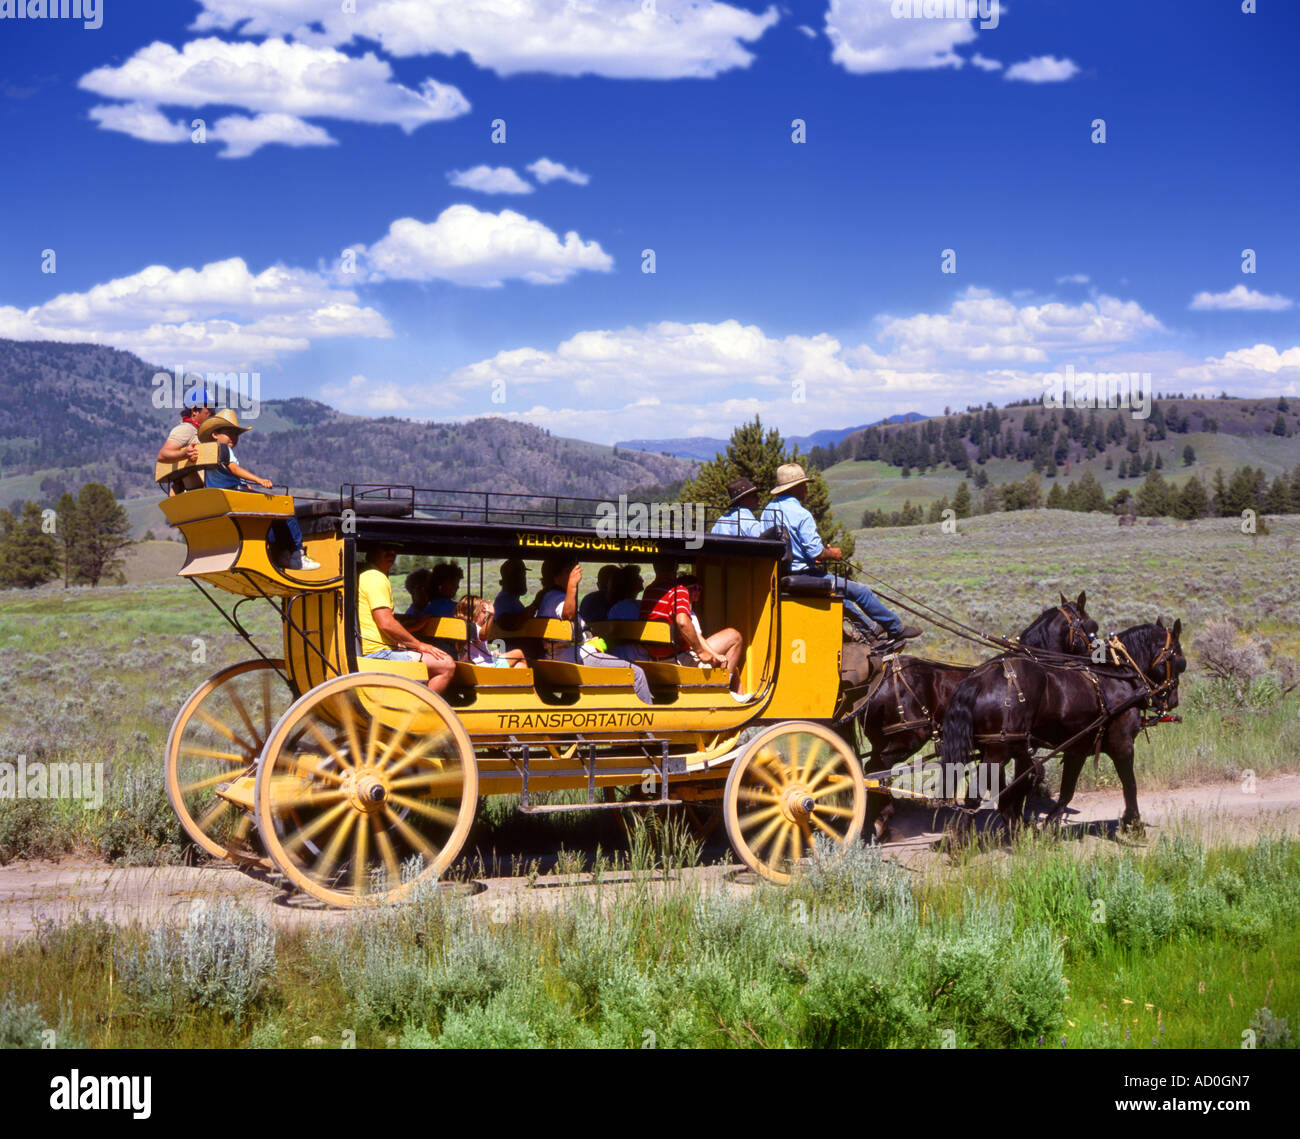 Stagecoach Stock Photos & Stagecoach Stock Images